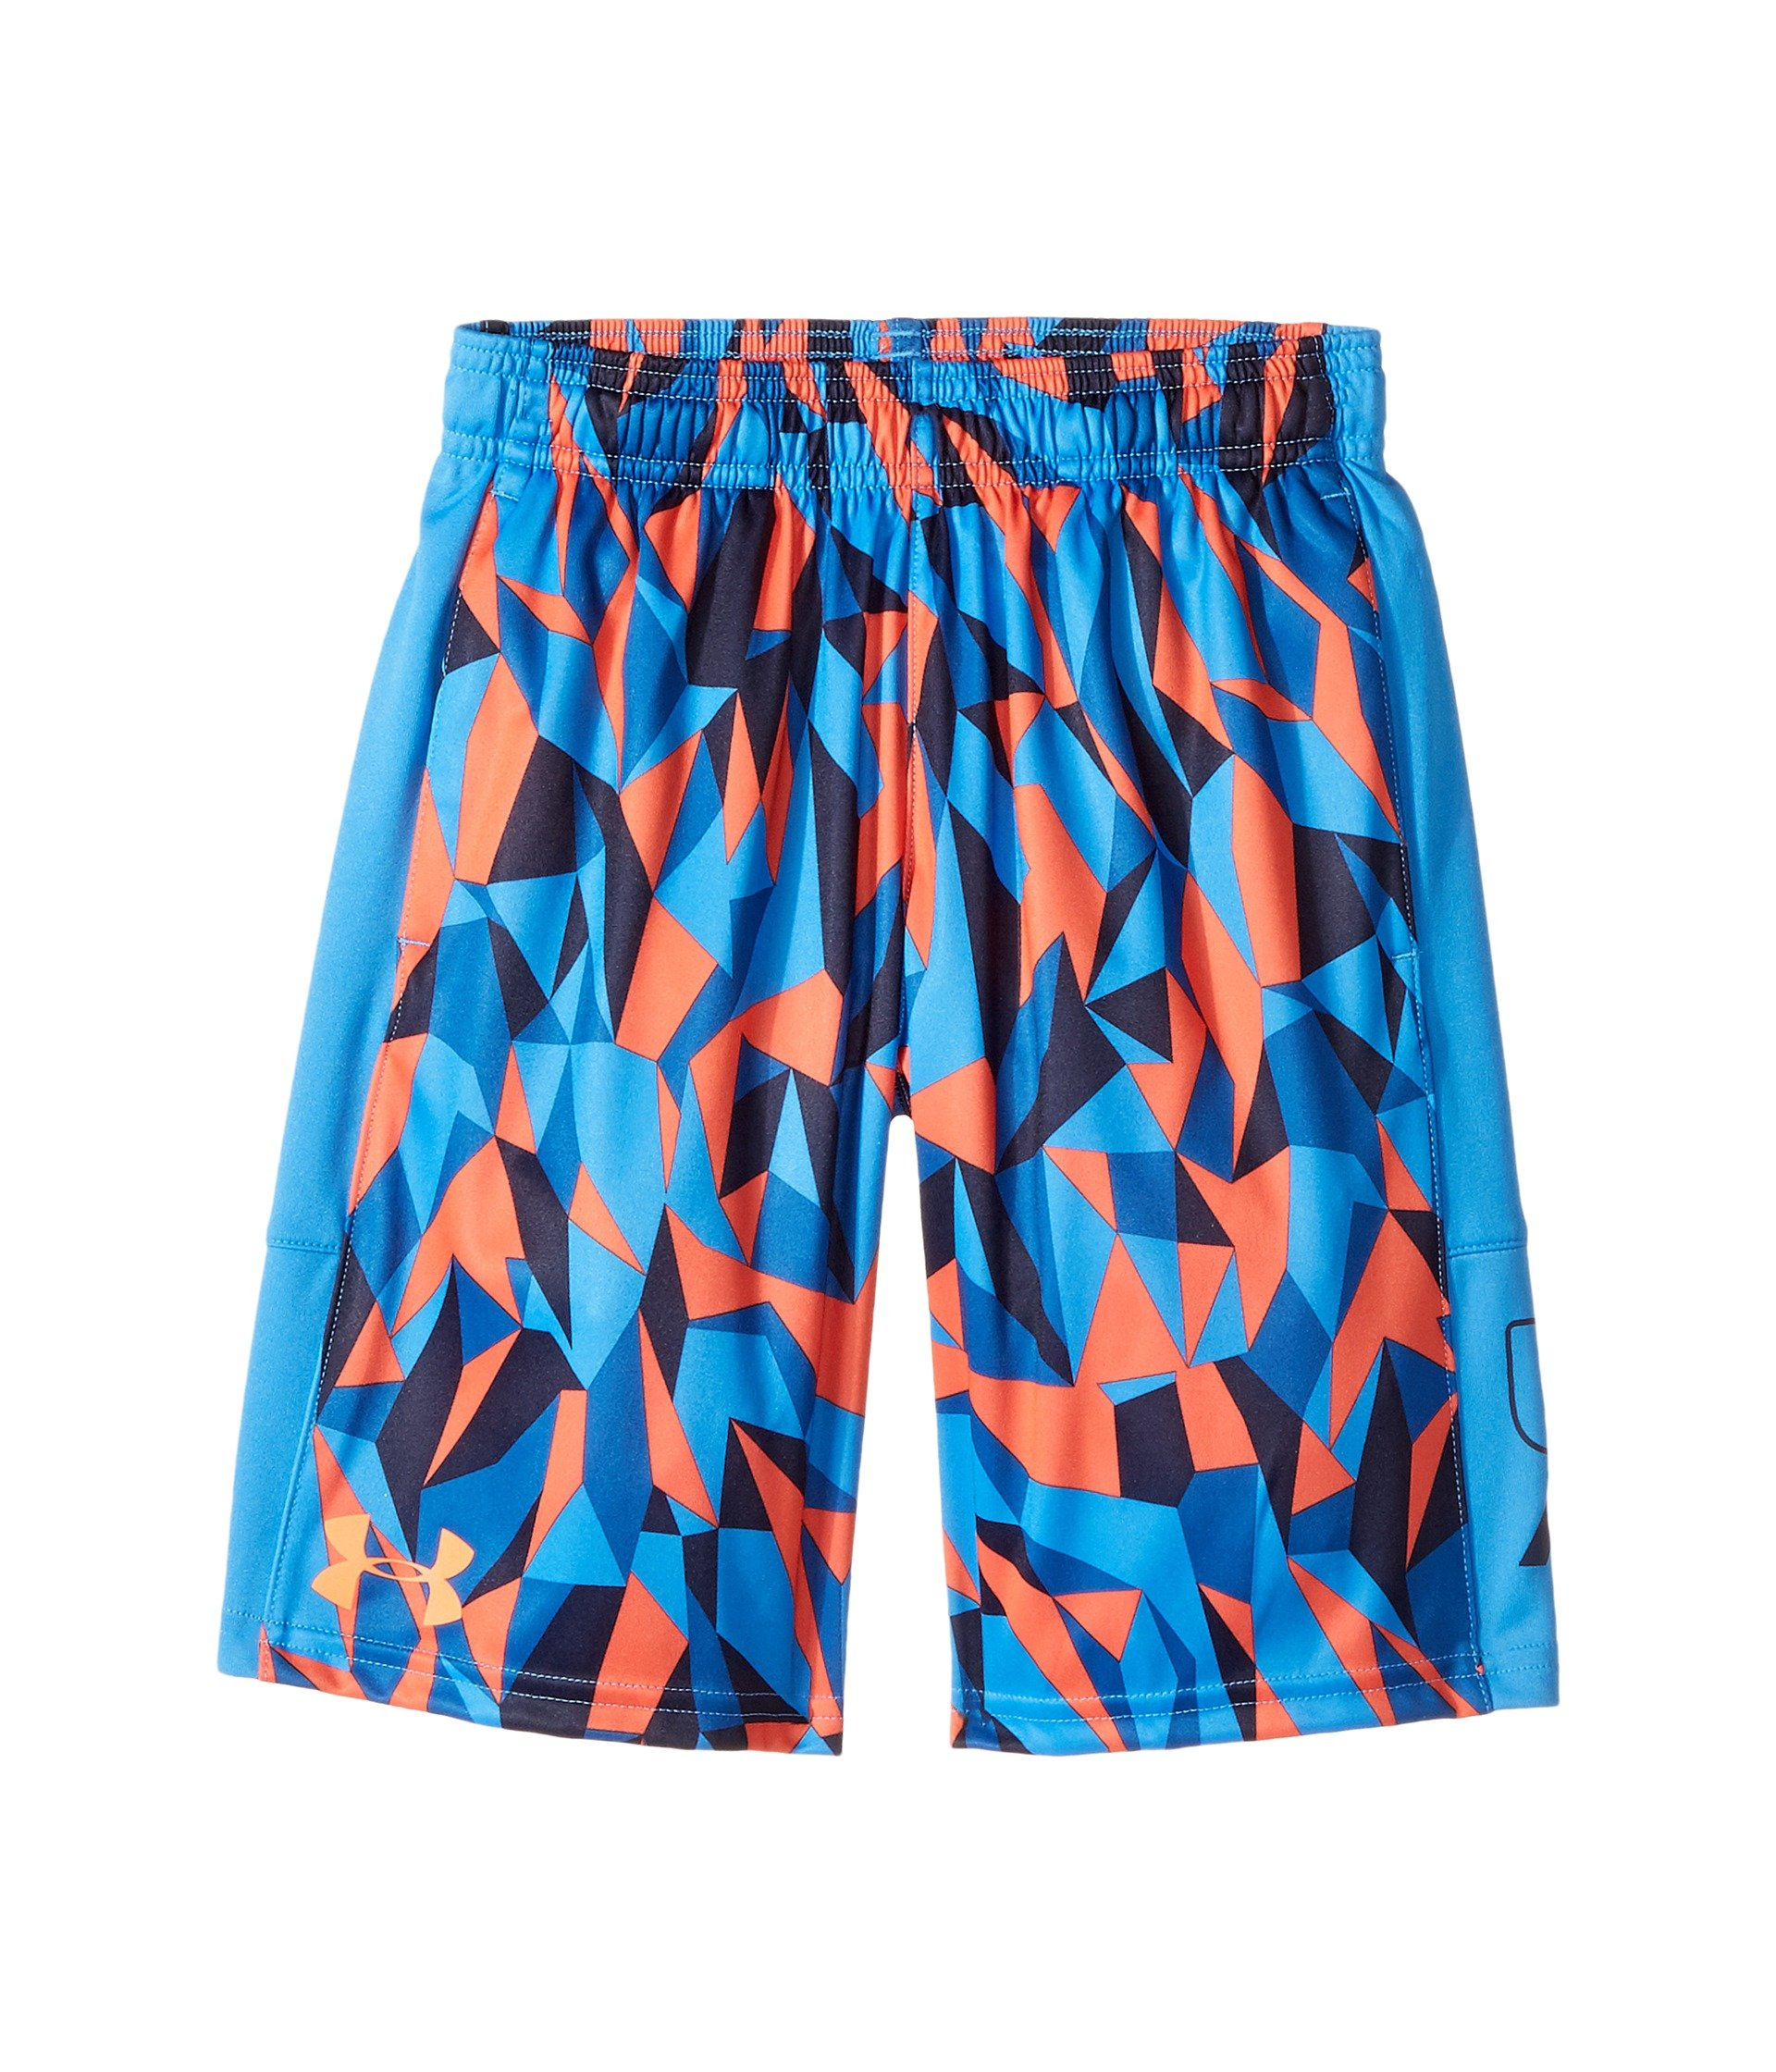 Under Armour Kids Boy's Instinct Printed Shorts (Big Kids) Mako Blue/Mako Blue/Magma Orange XL (18-20 Big Kids) by Under Armour